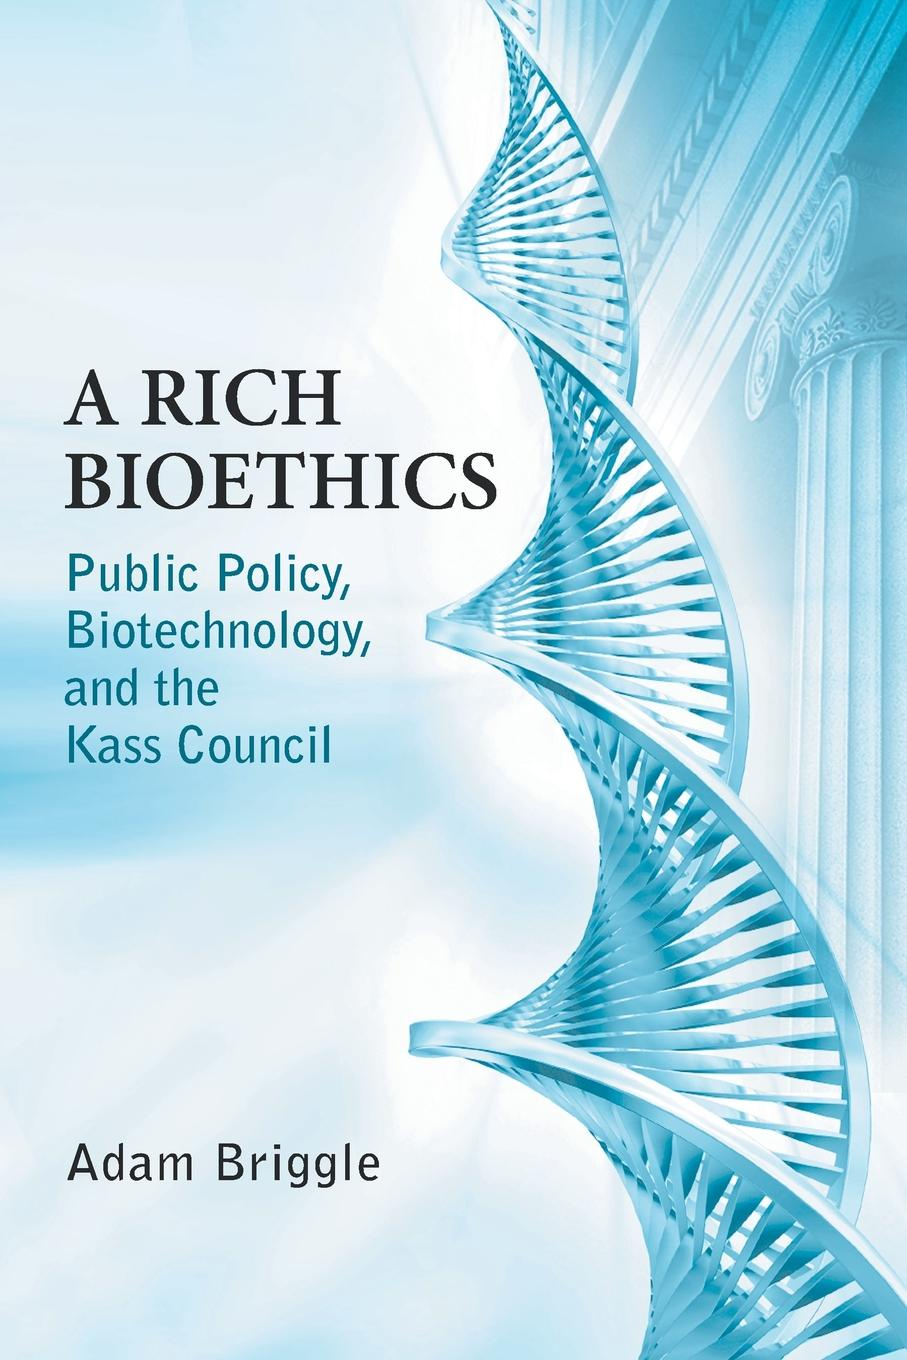 Adam Briggle Rich Bioethics. Public Policy, Biotechnology, and the Kass Council richard george boudreau incorporating bioethics education into school curriculums